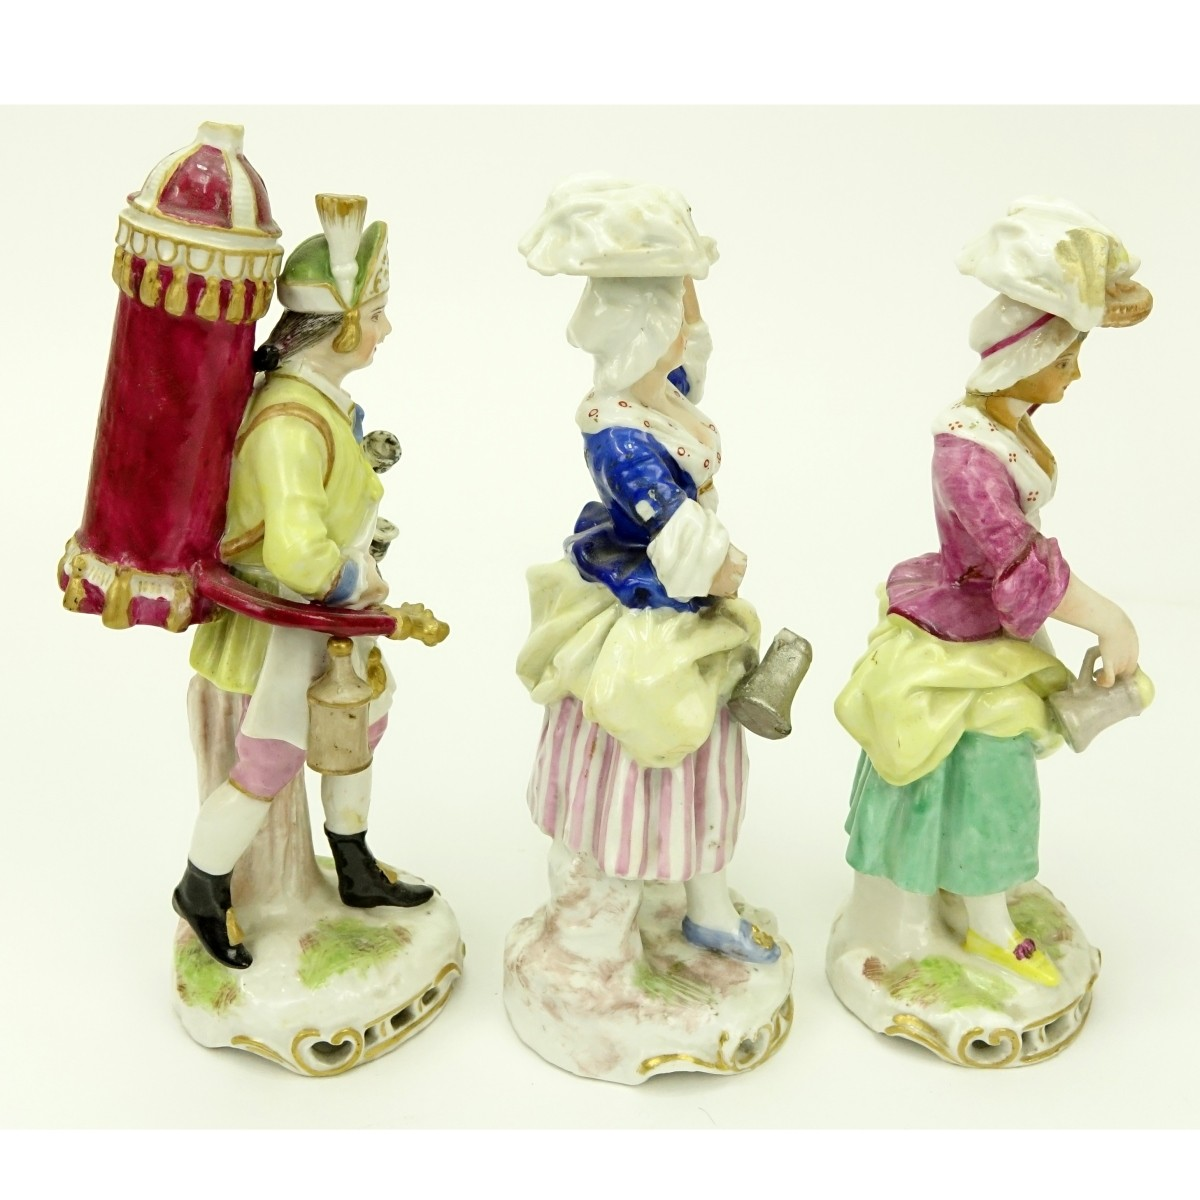 Grouping of Three (3) Antique Porcelain Figurines